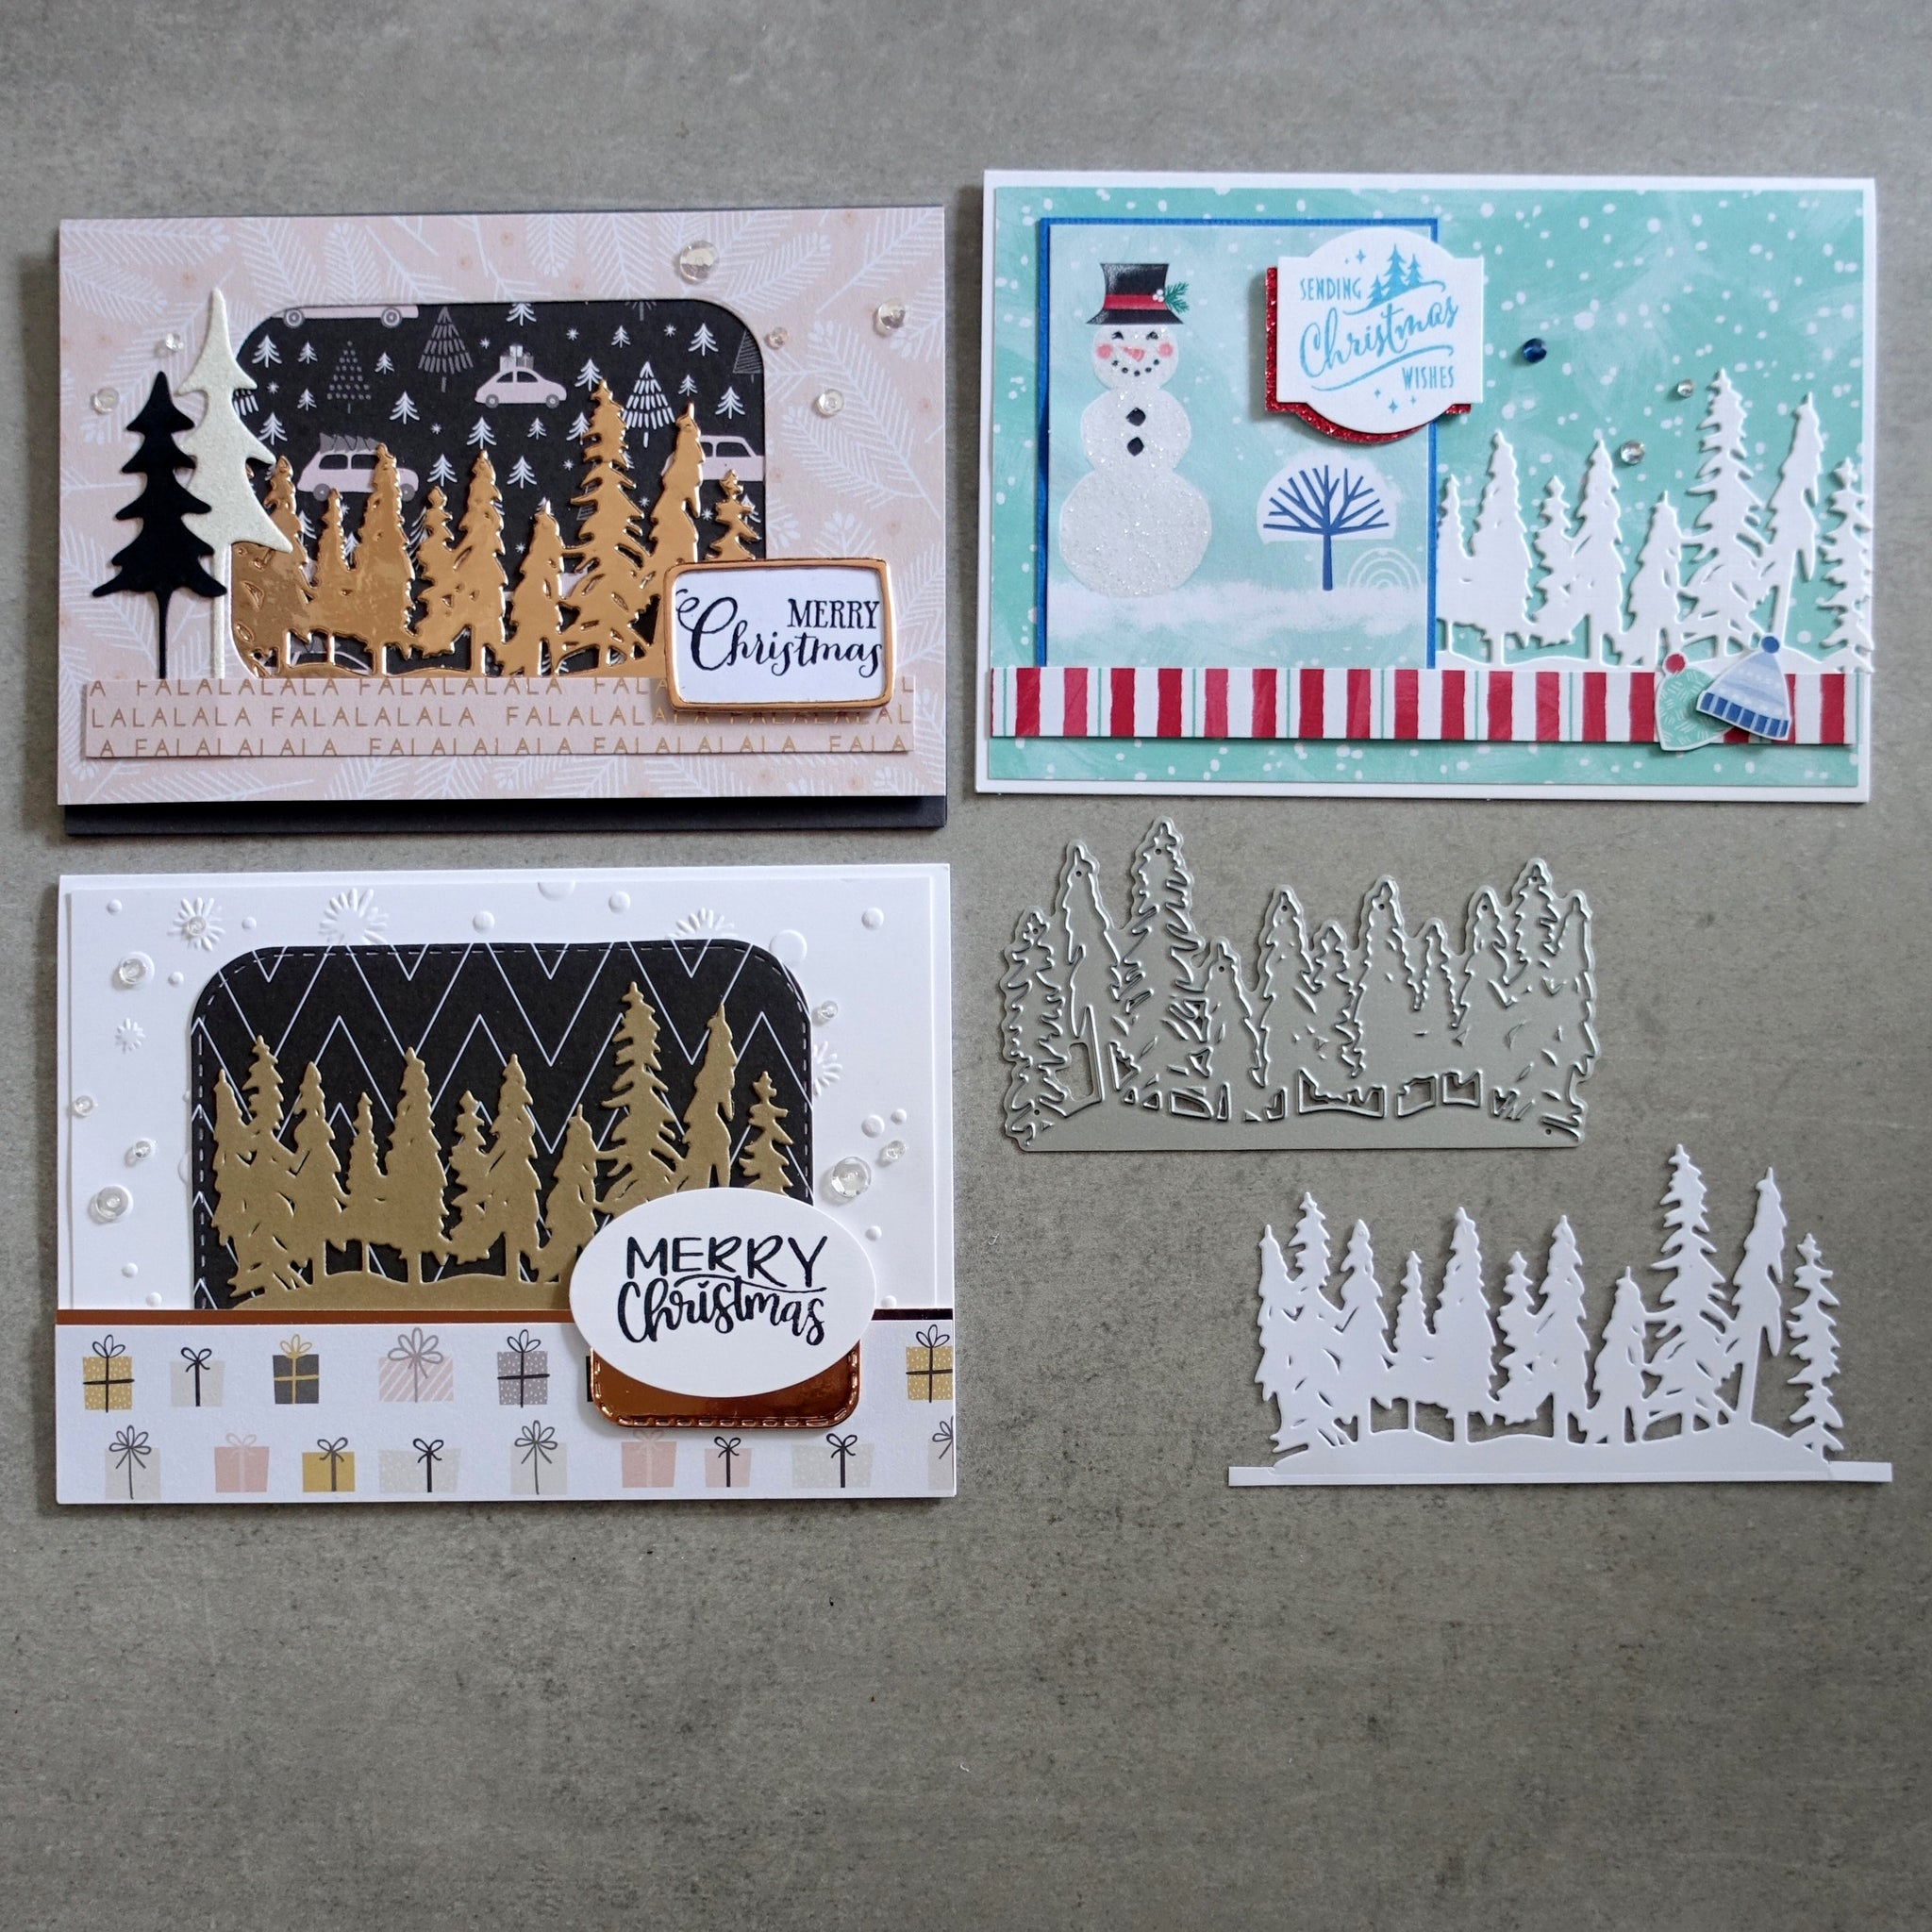 shopaperartz CHRISTMAS TREES FOREST ROW OF TREES BORDER CUTTING DIE CARDMAKING